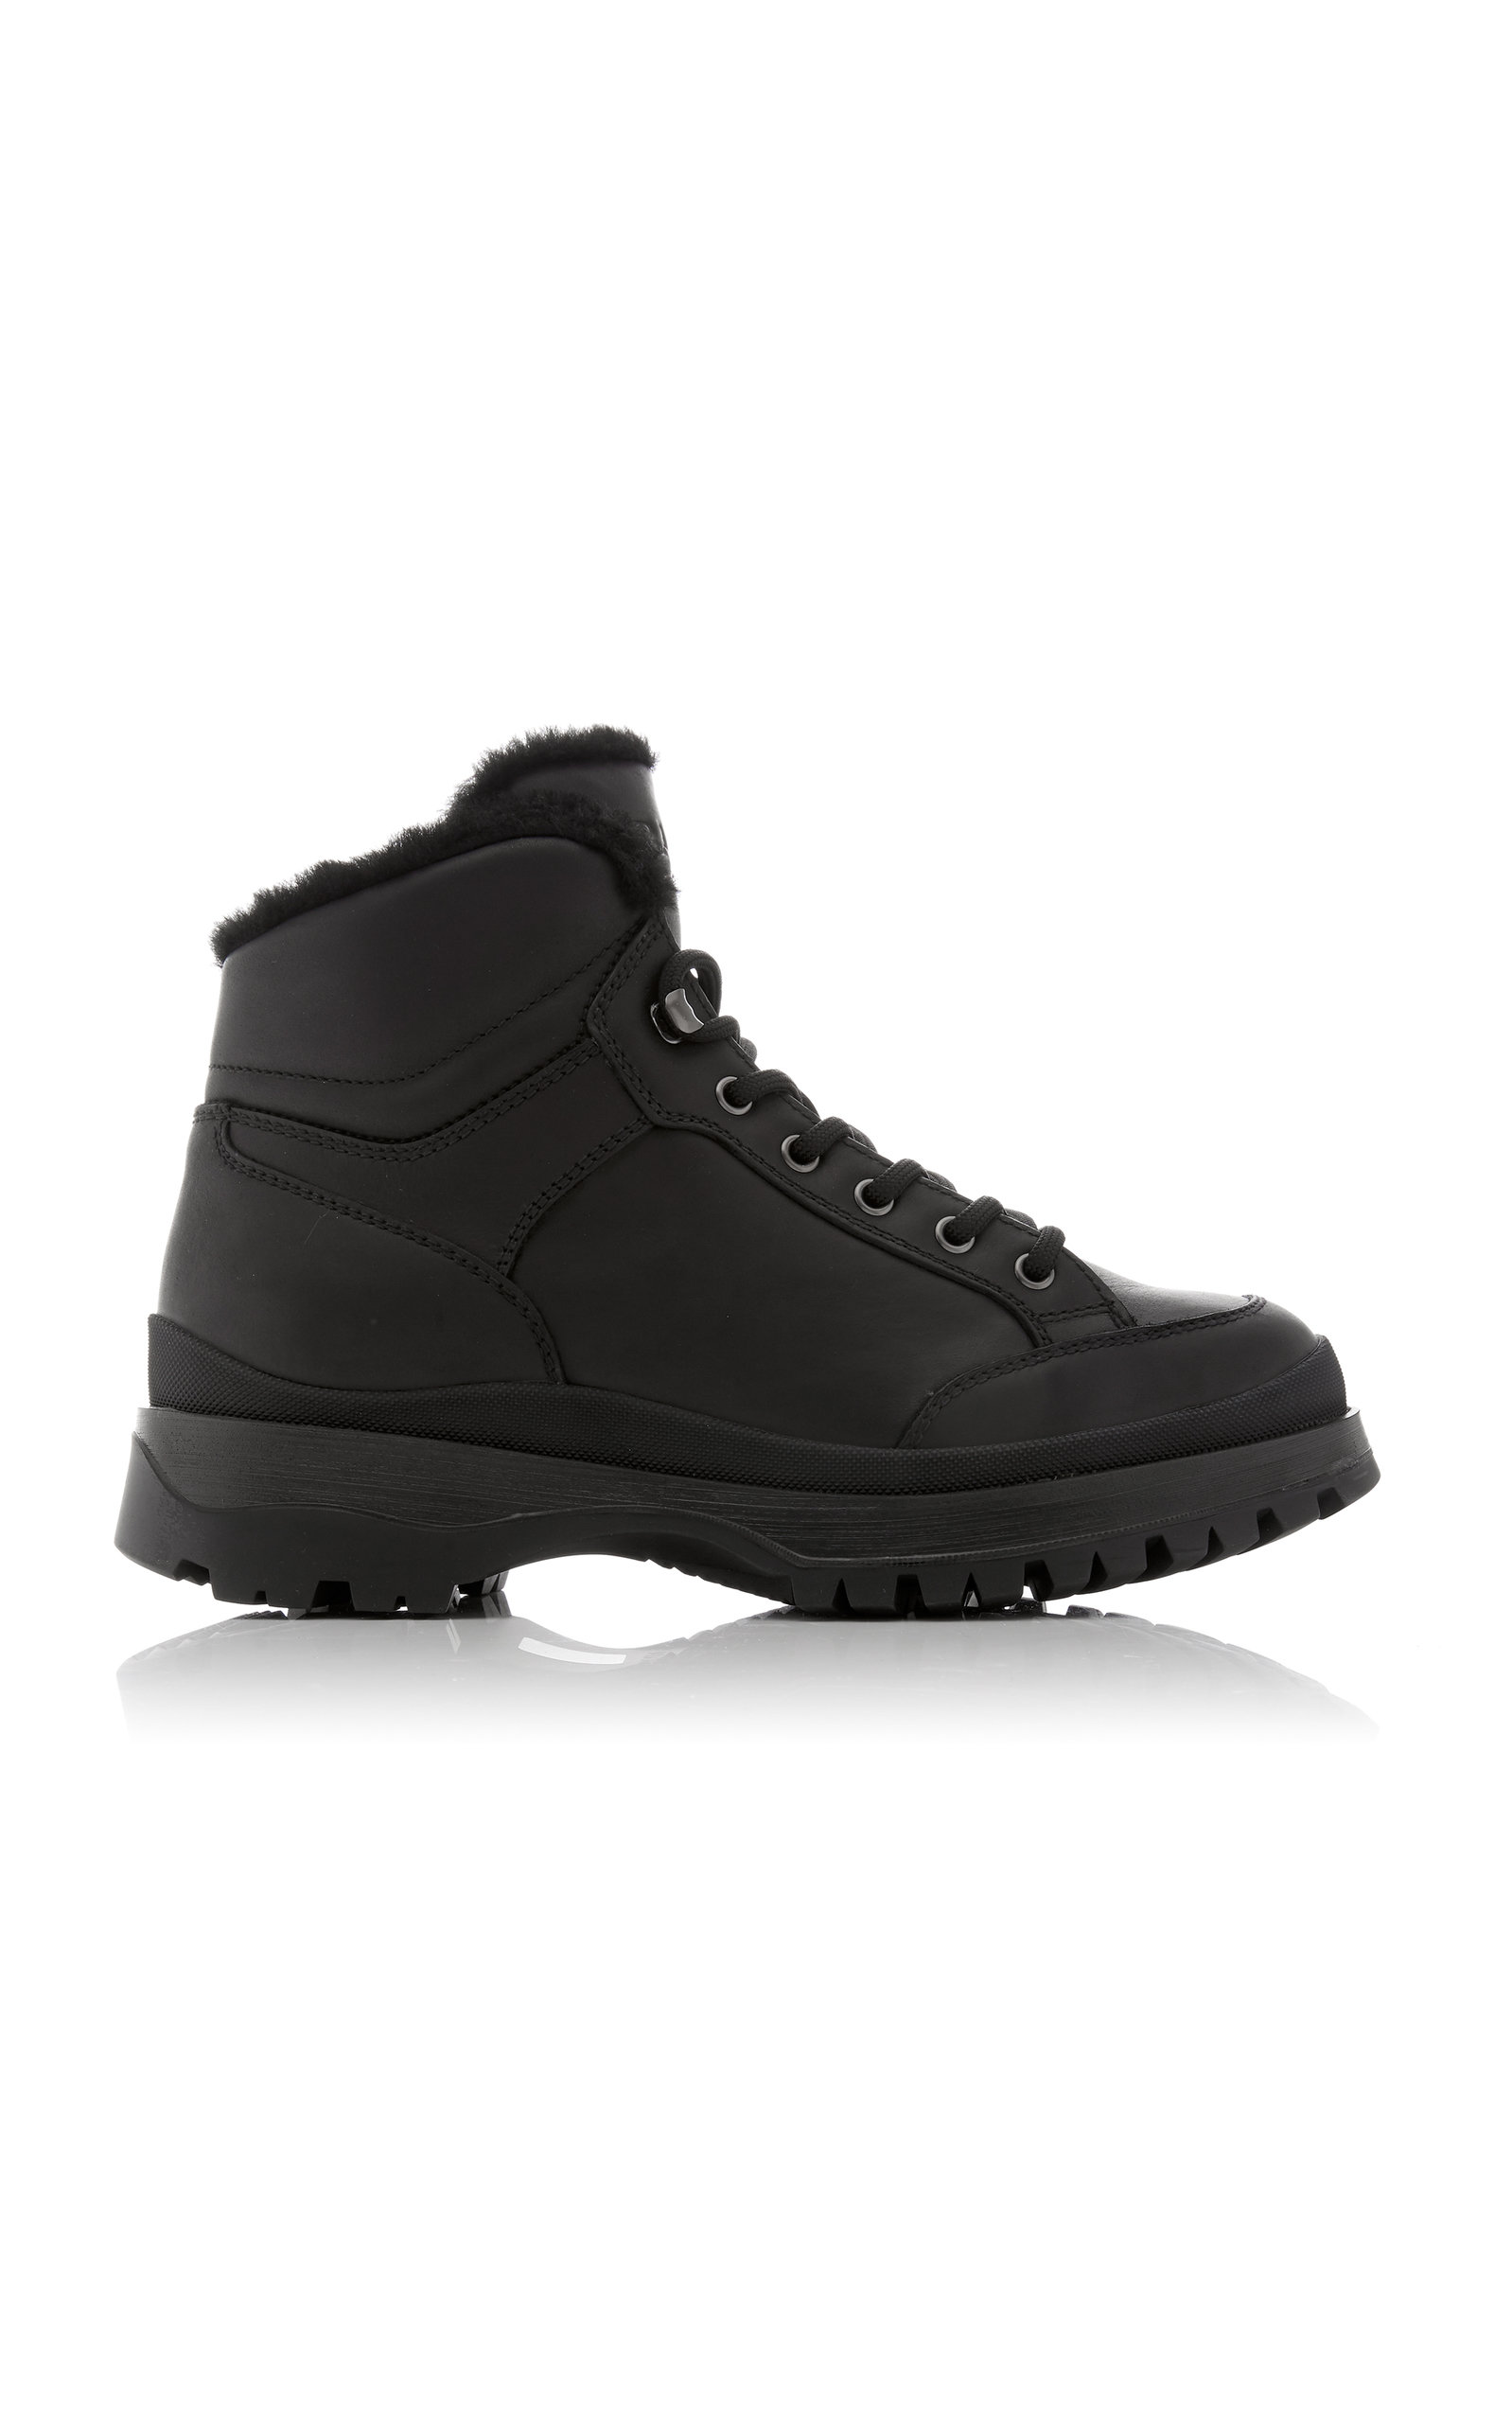 Prada Boots Montagna Ankle Boots